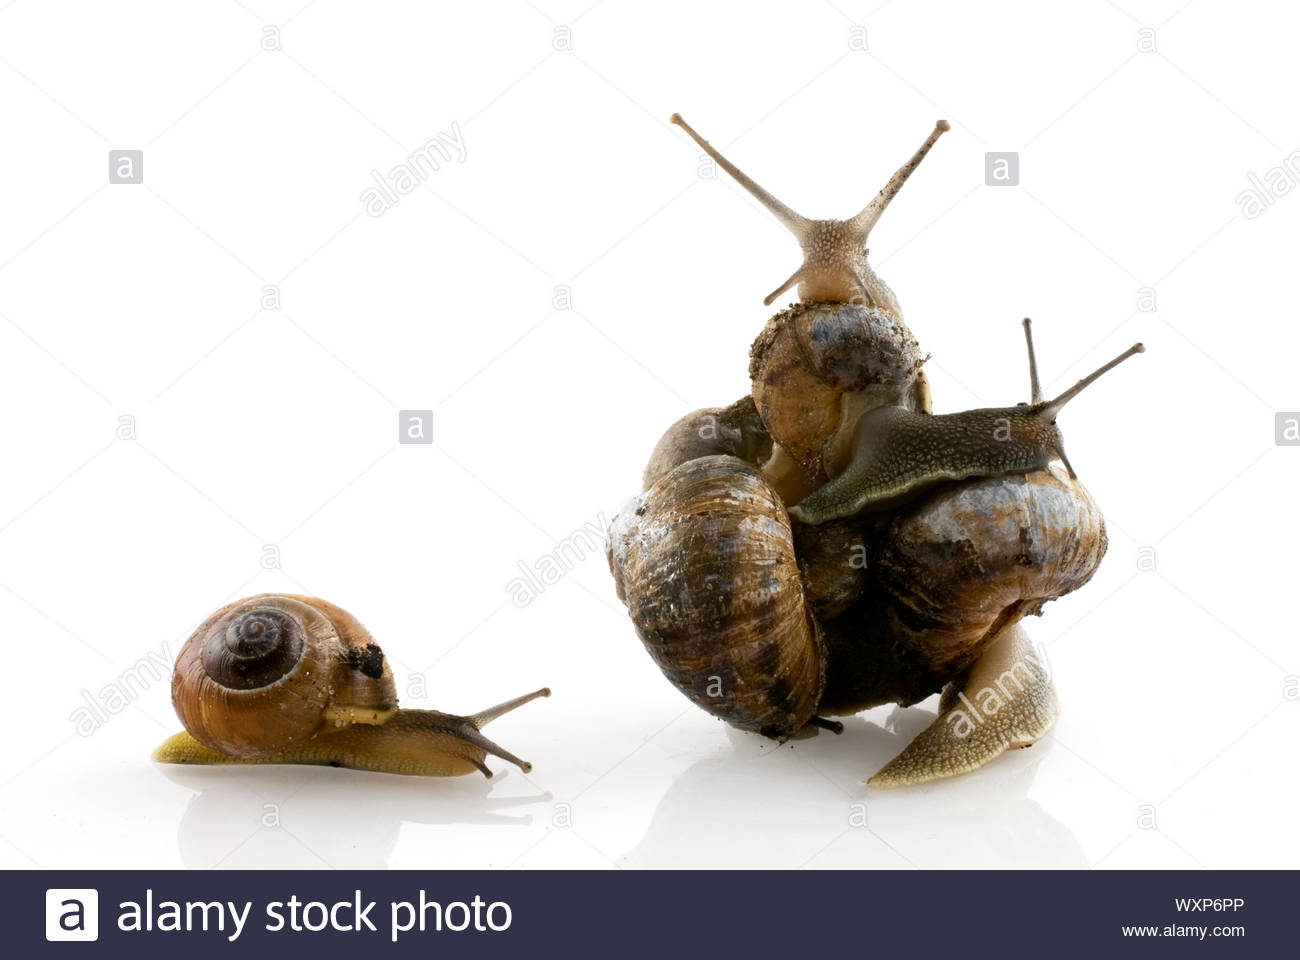 one snail cannot join them, and leave alone Stock Photo